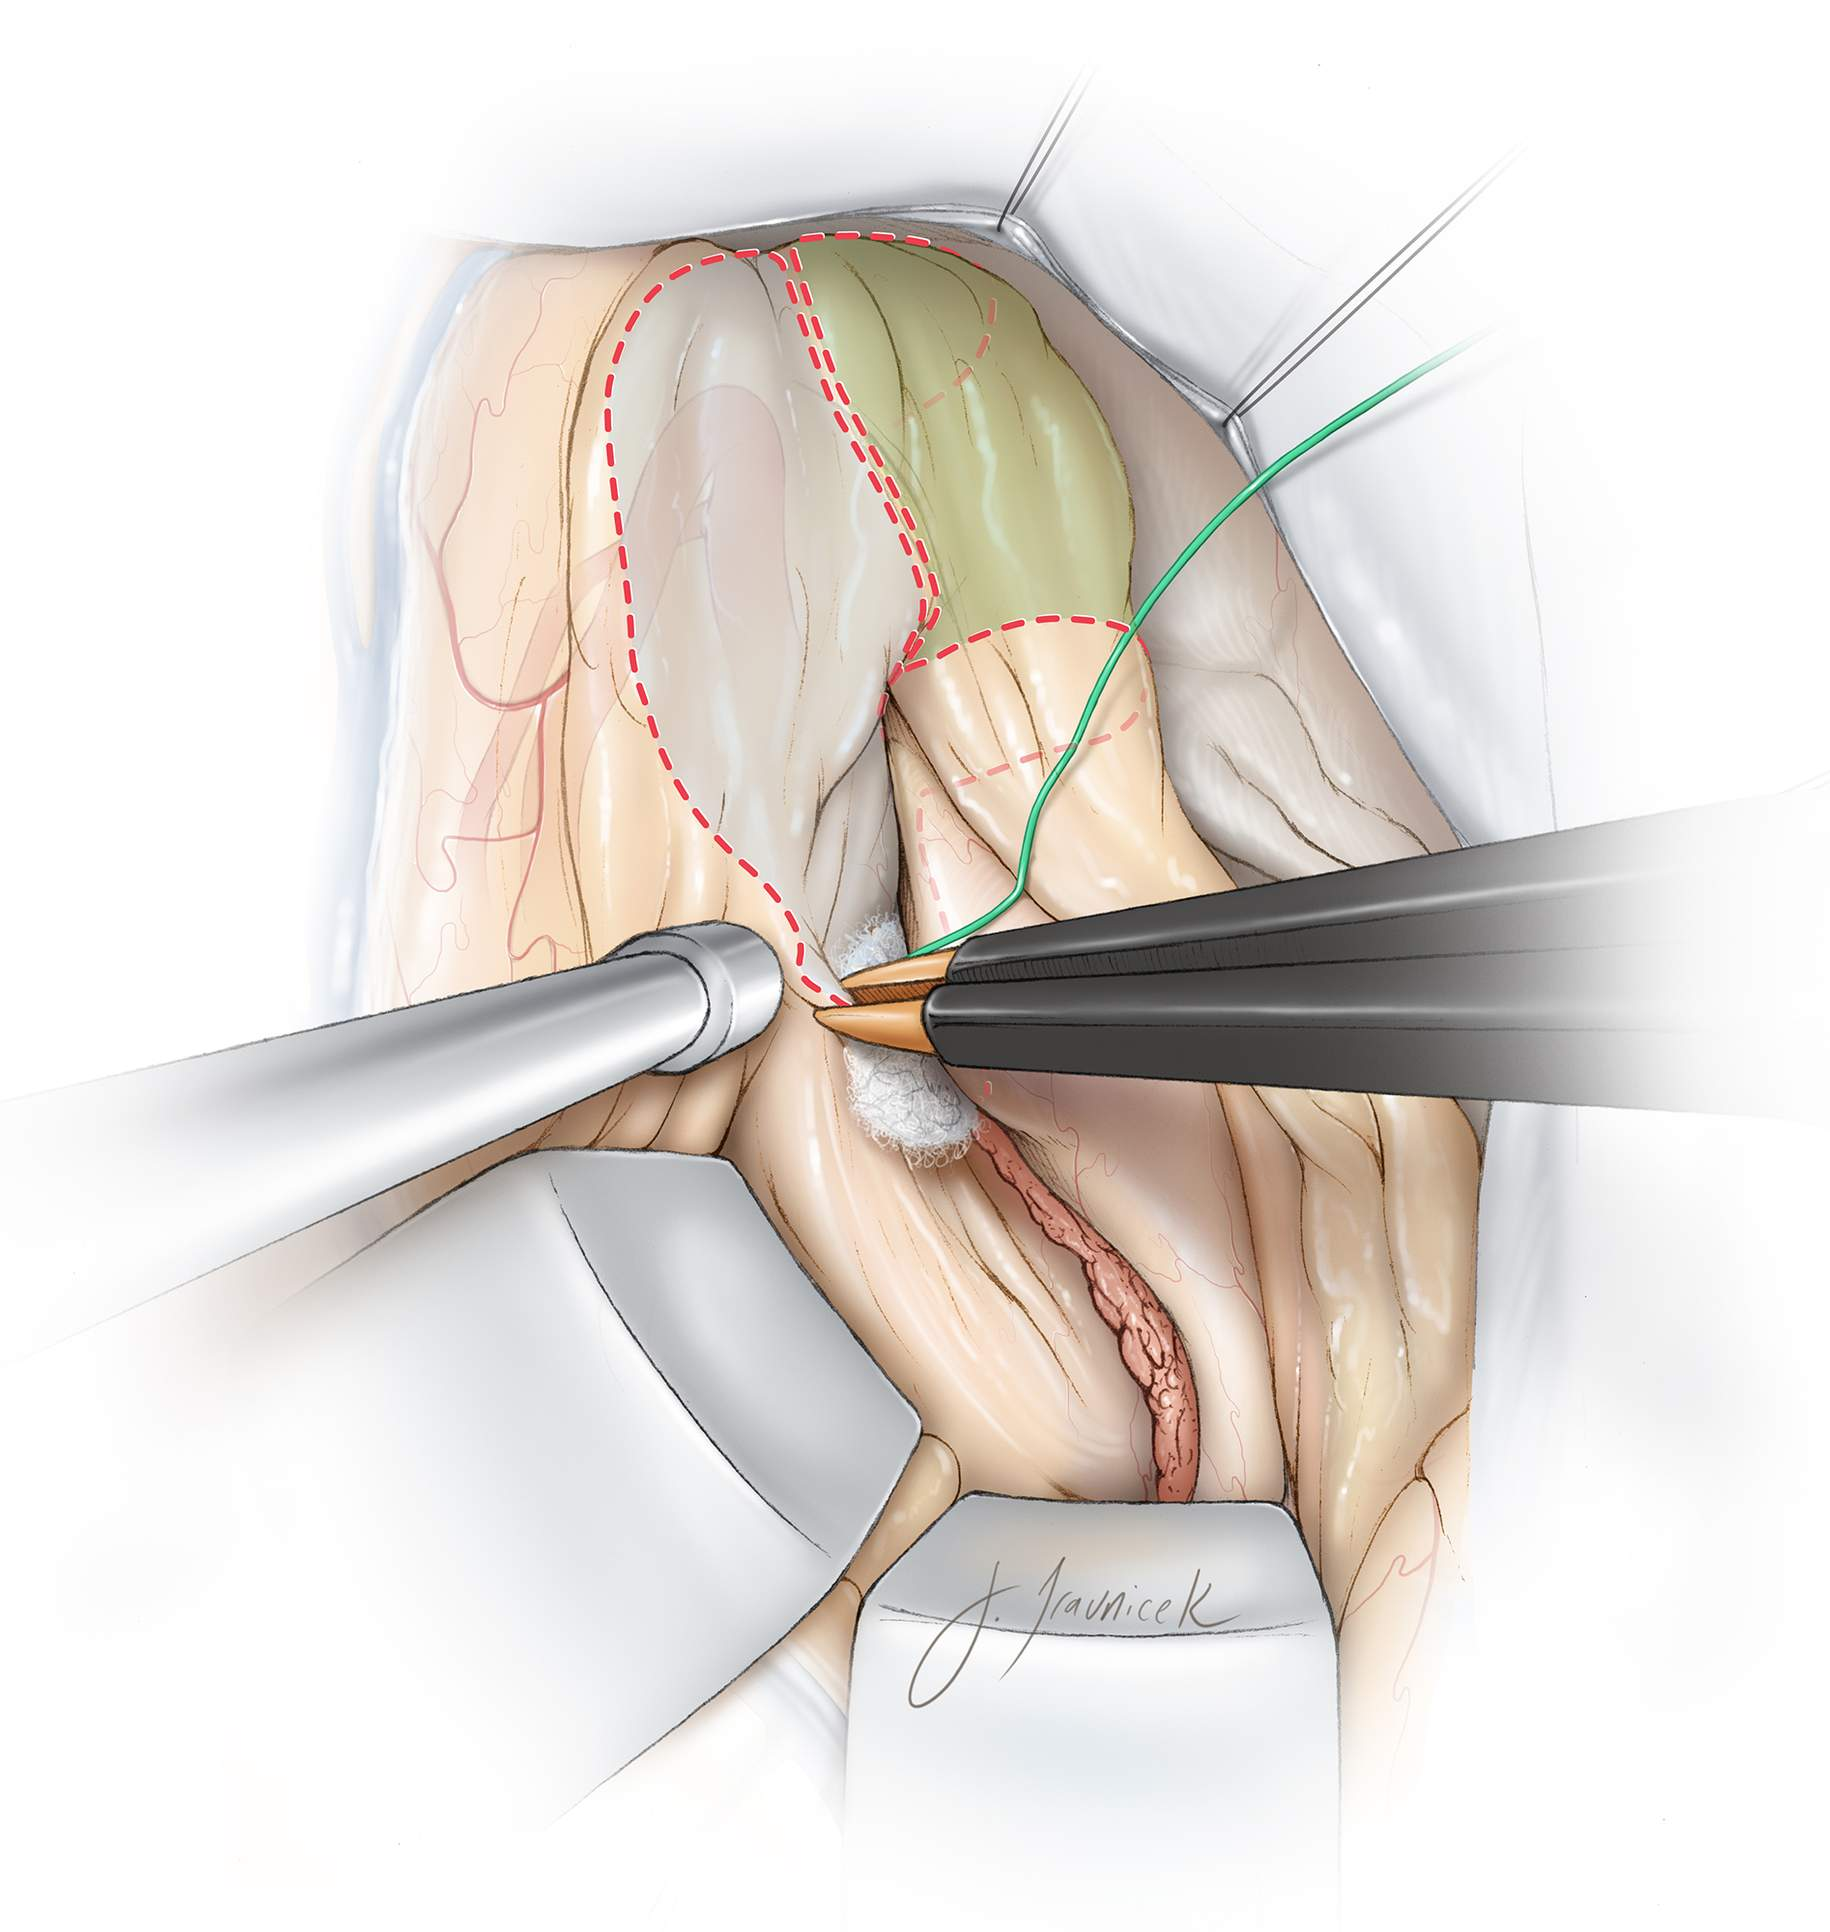 Figure 17: The inferior two-thirds of the amygdala and the entire uncus of the parahippocampus are highlighted in white and green, respectively. Resection of the mesial structures begins by subpial evacuation of these structures. Removal of the amygdala is conducted utilizing the dorsal plane of dissection mentioned previously.